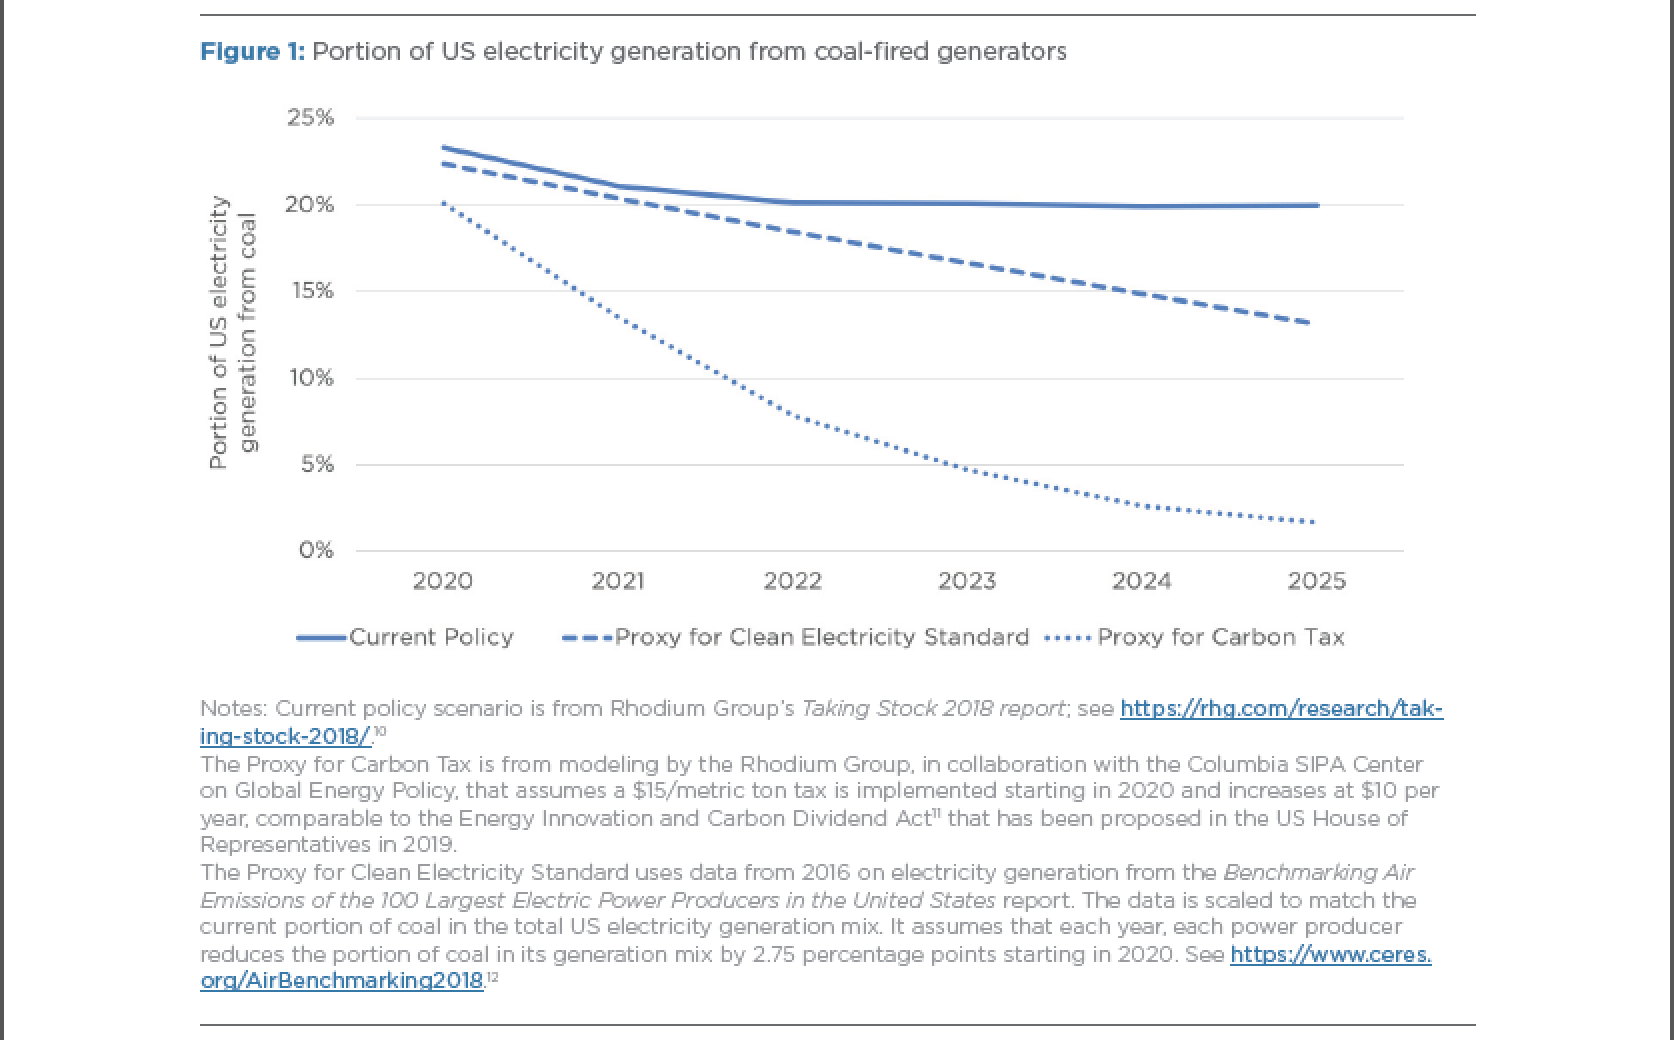 Portion of US electricity generation from coal-fired generators